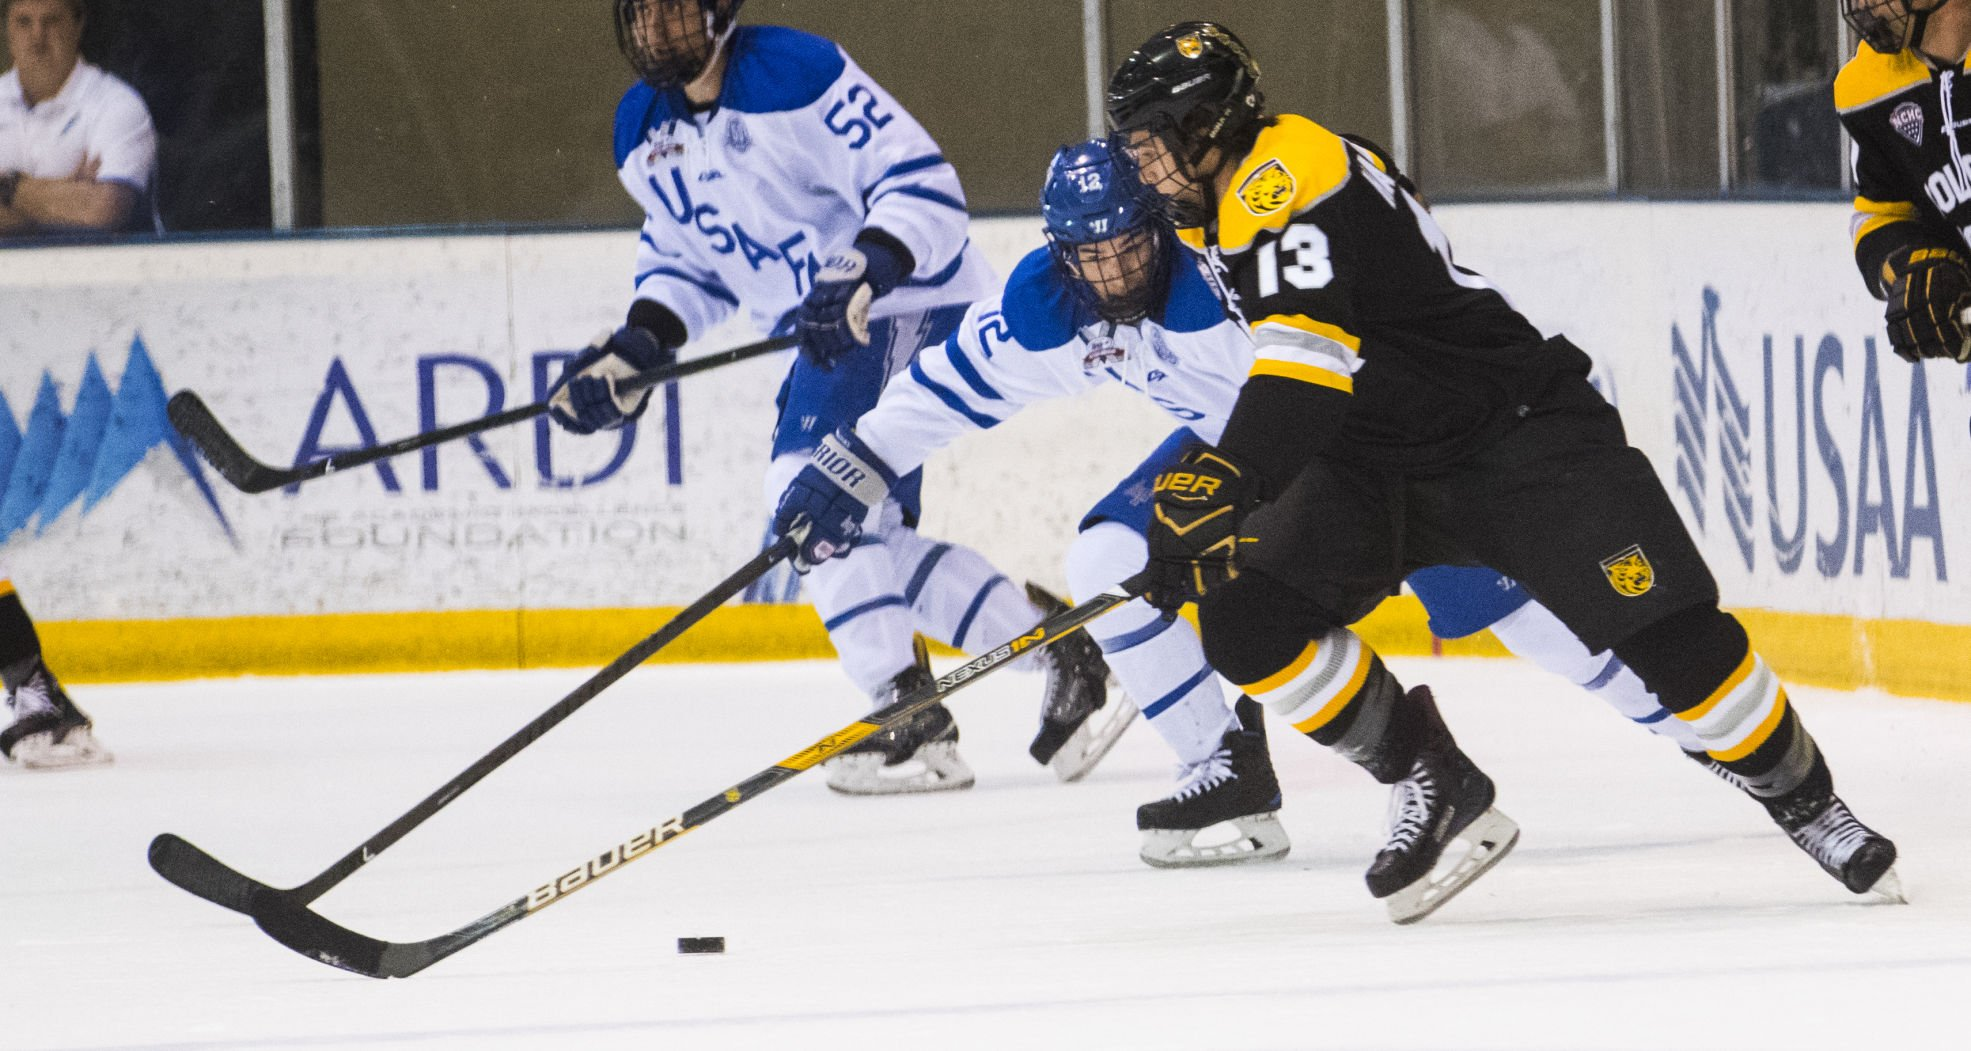 Big Weekend On Tap As CC, Air Force Hockey Host, Then Duel For Pikes Peak Trophy